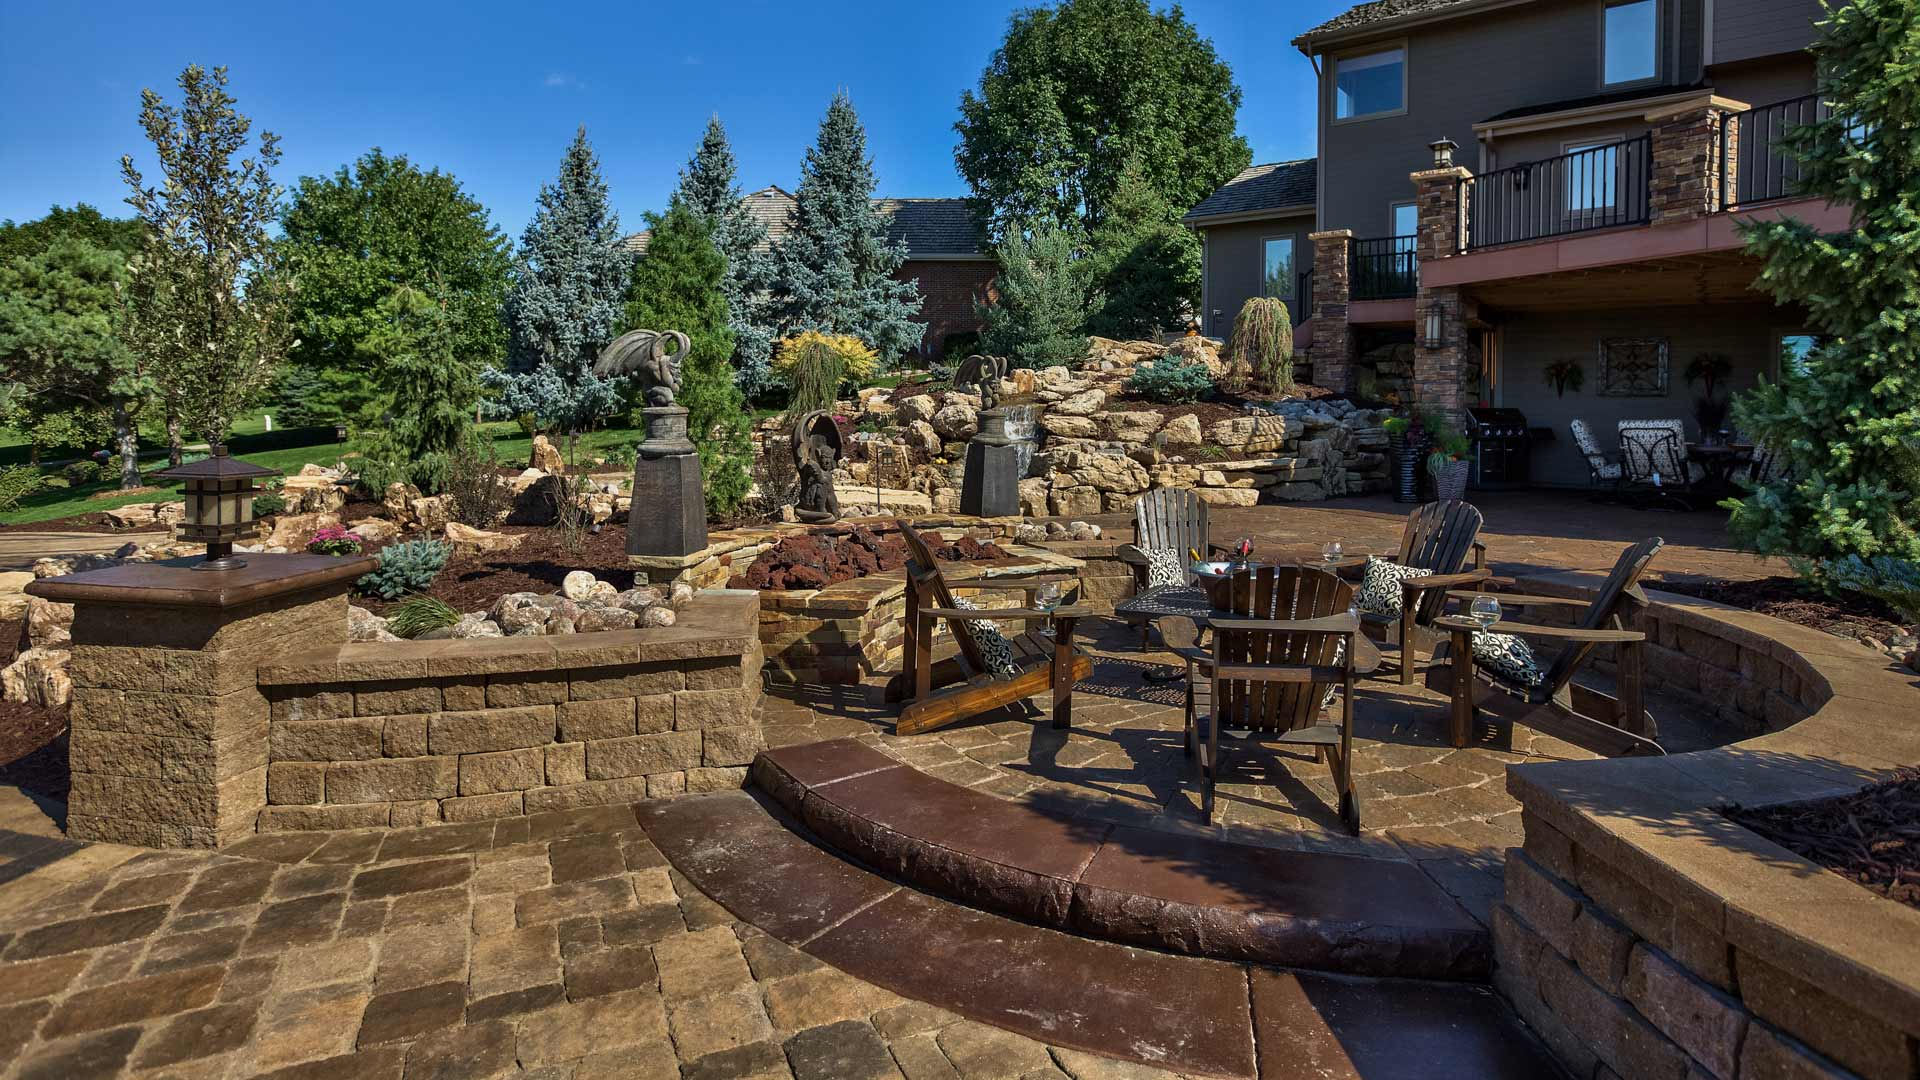 Outdoor living space with seating wall, patio, and stonework in Omaha,  NE.